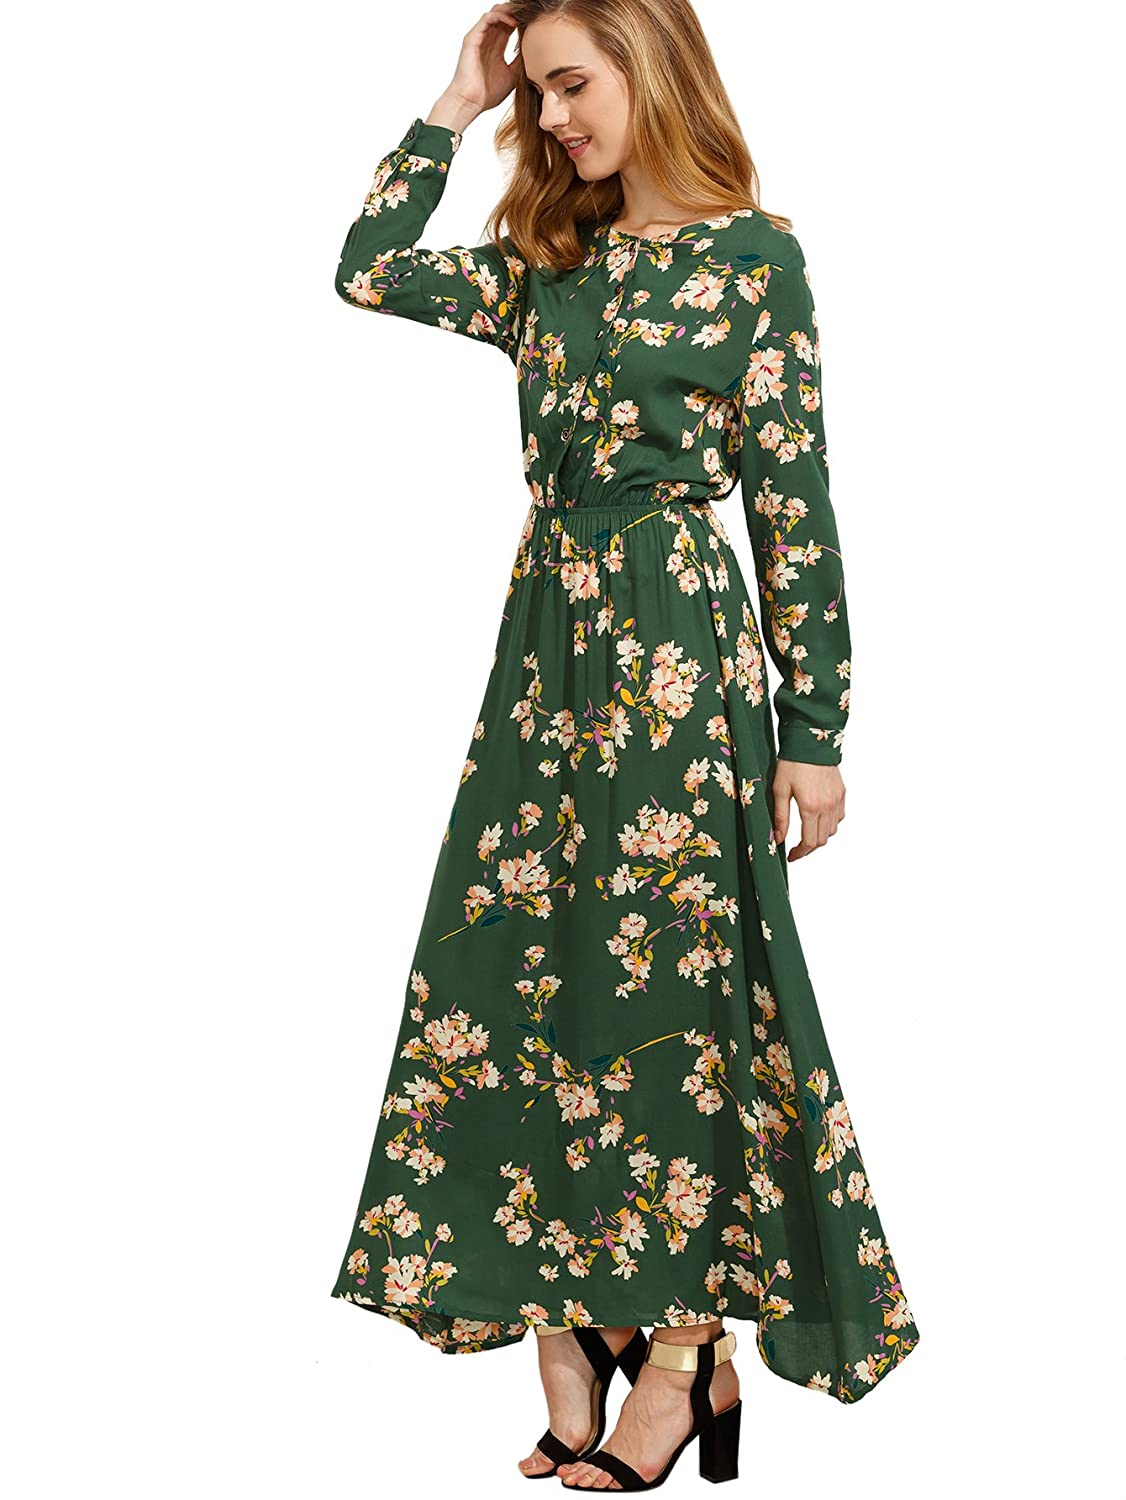 Vintage Tea Dresses, Floral Tea Dresses, Tea Length Dresses Floerns Womens Long Sleeve Floral Print Button Casual Maxi Dress $39.99 AT vintagedancer.com